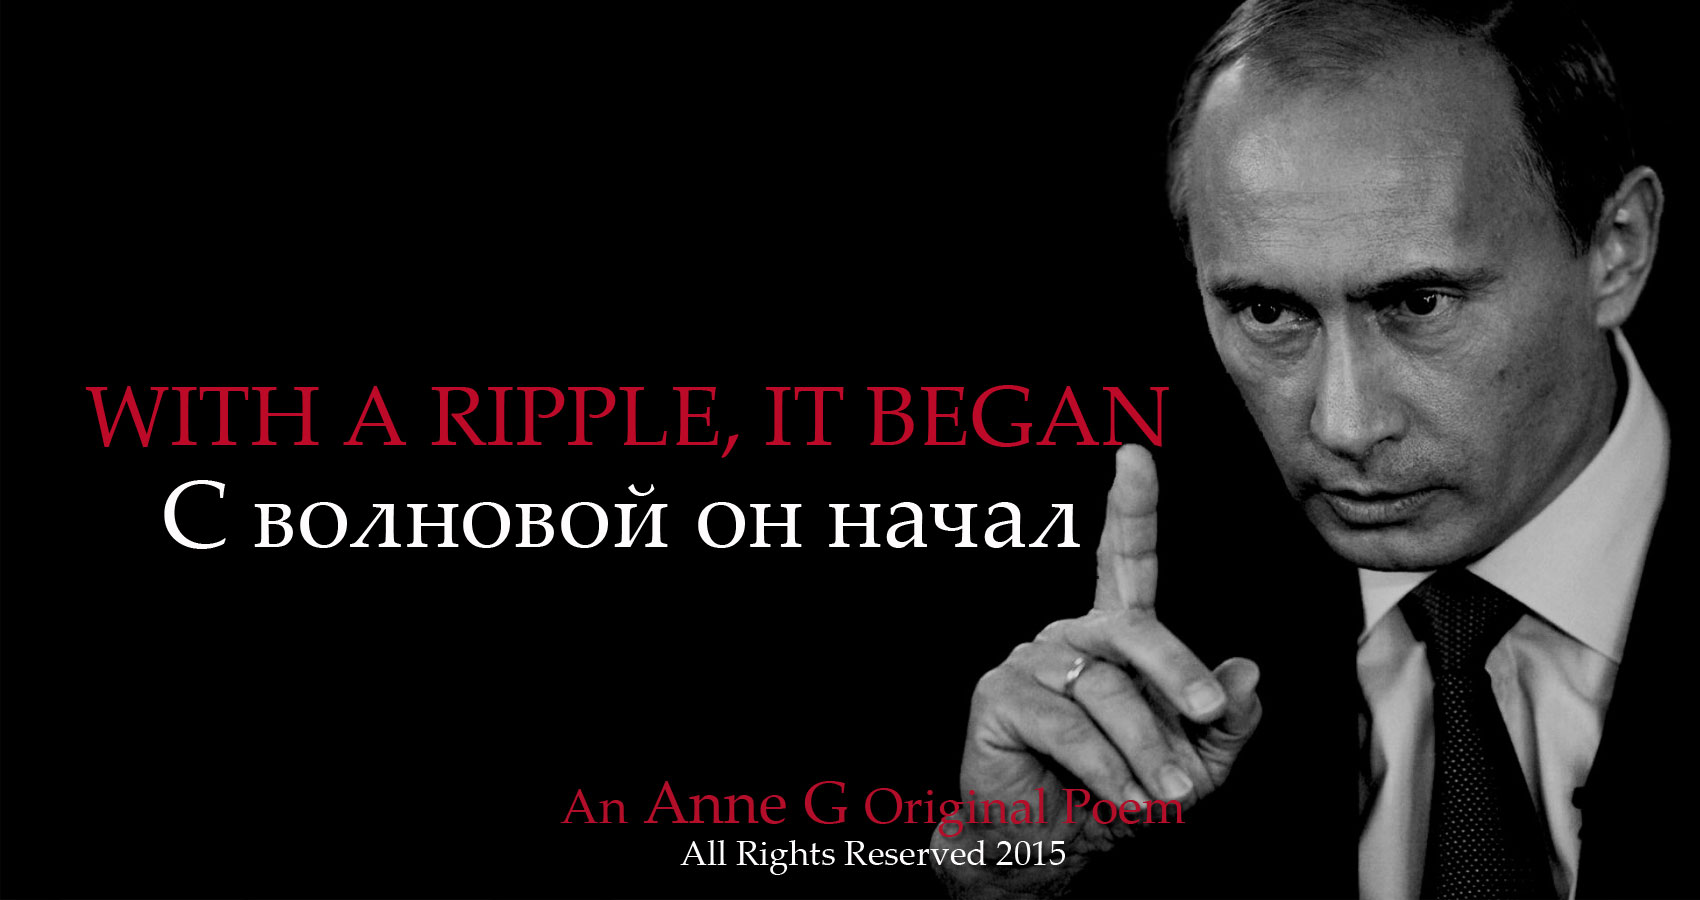 With A Ripple It Began an Anne G original poem at spillwords press spillwords.com Vladimir Putin